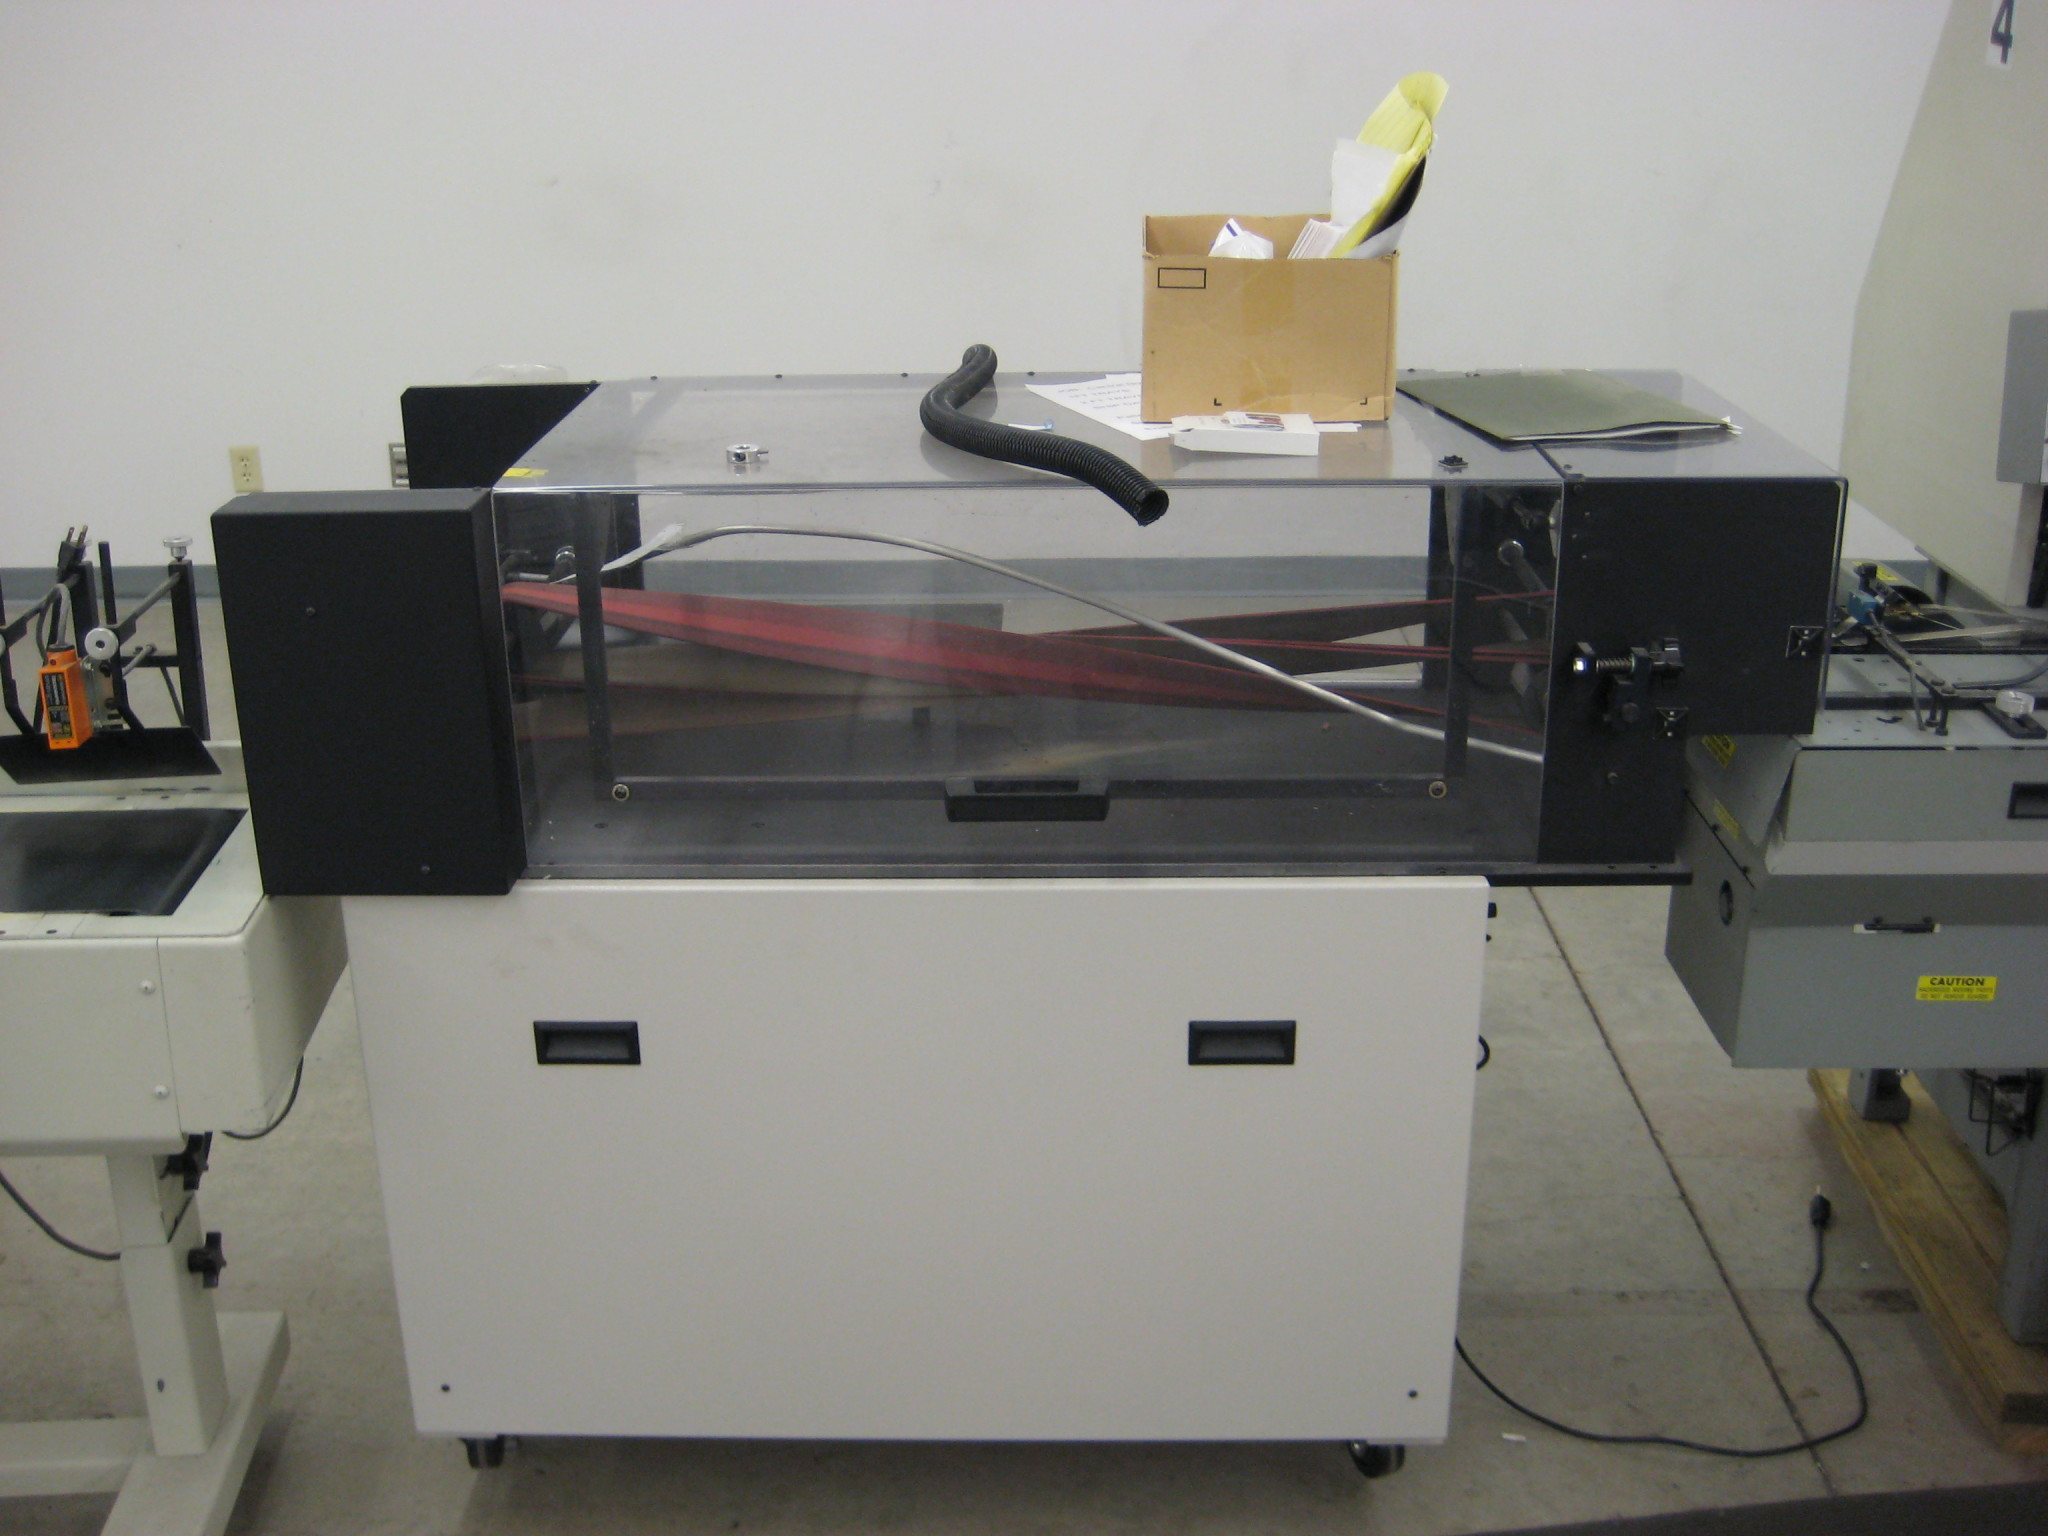 Mailcrafters Inserter For Sale - Certified Pre-Owned - For Sale